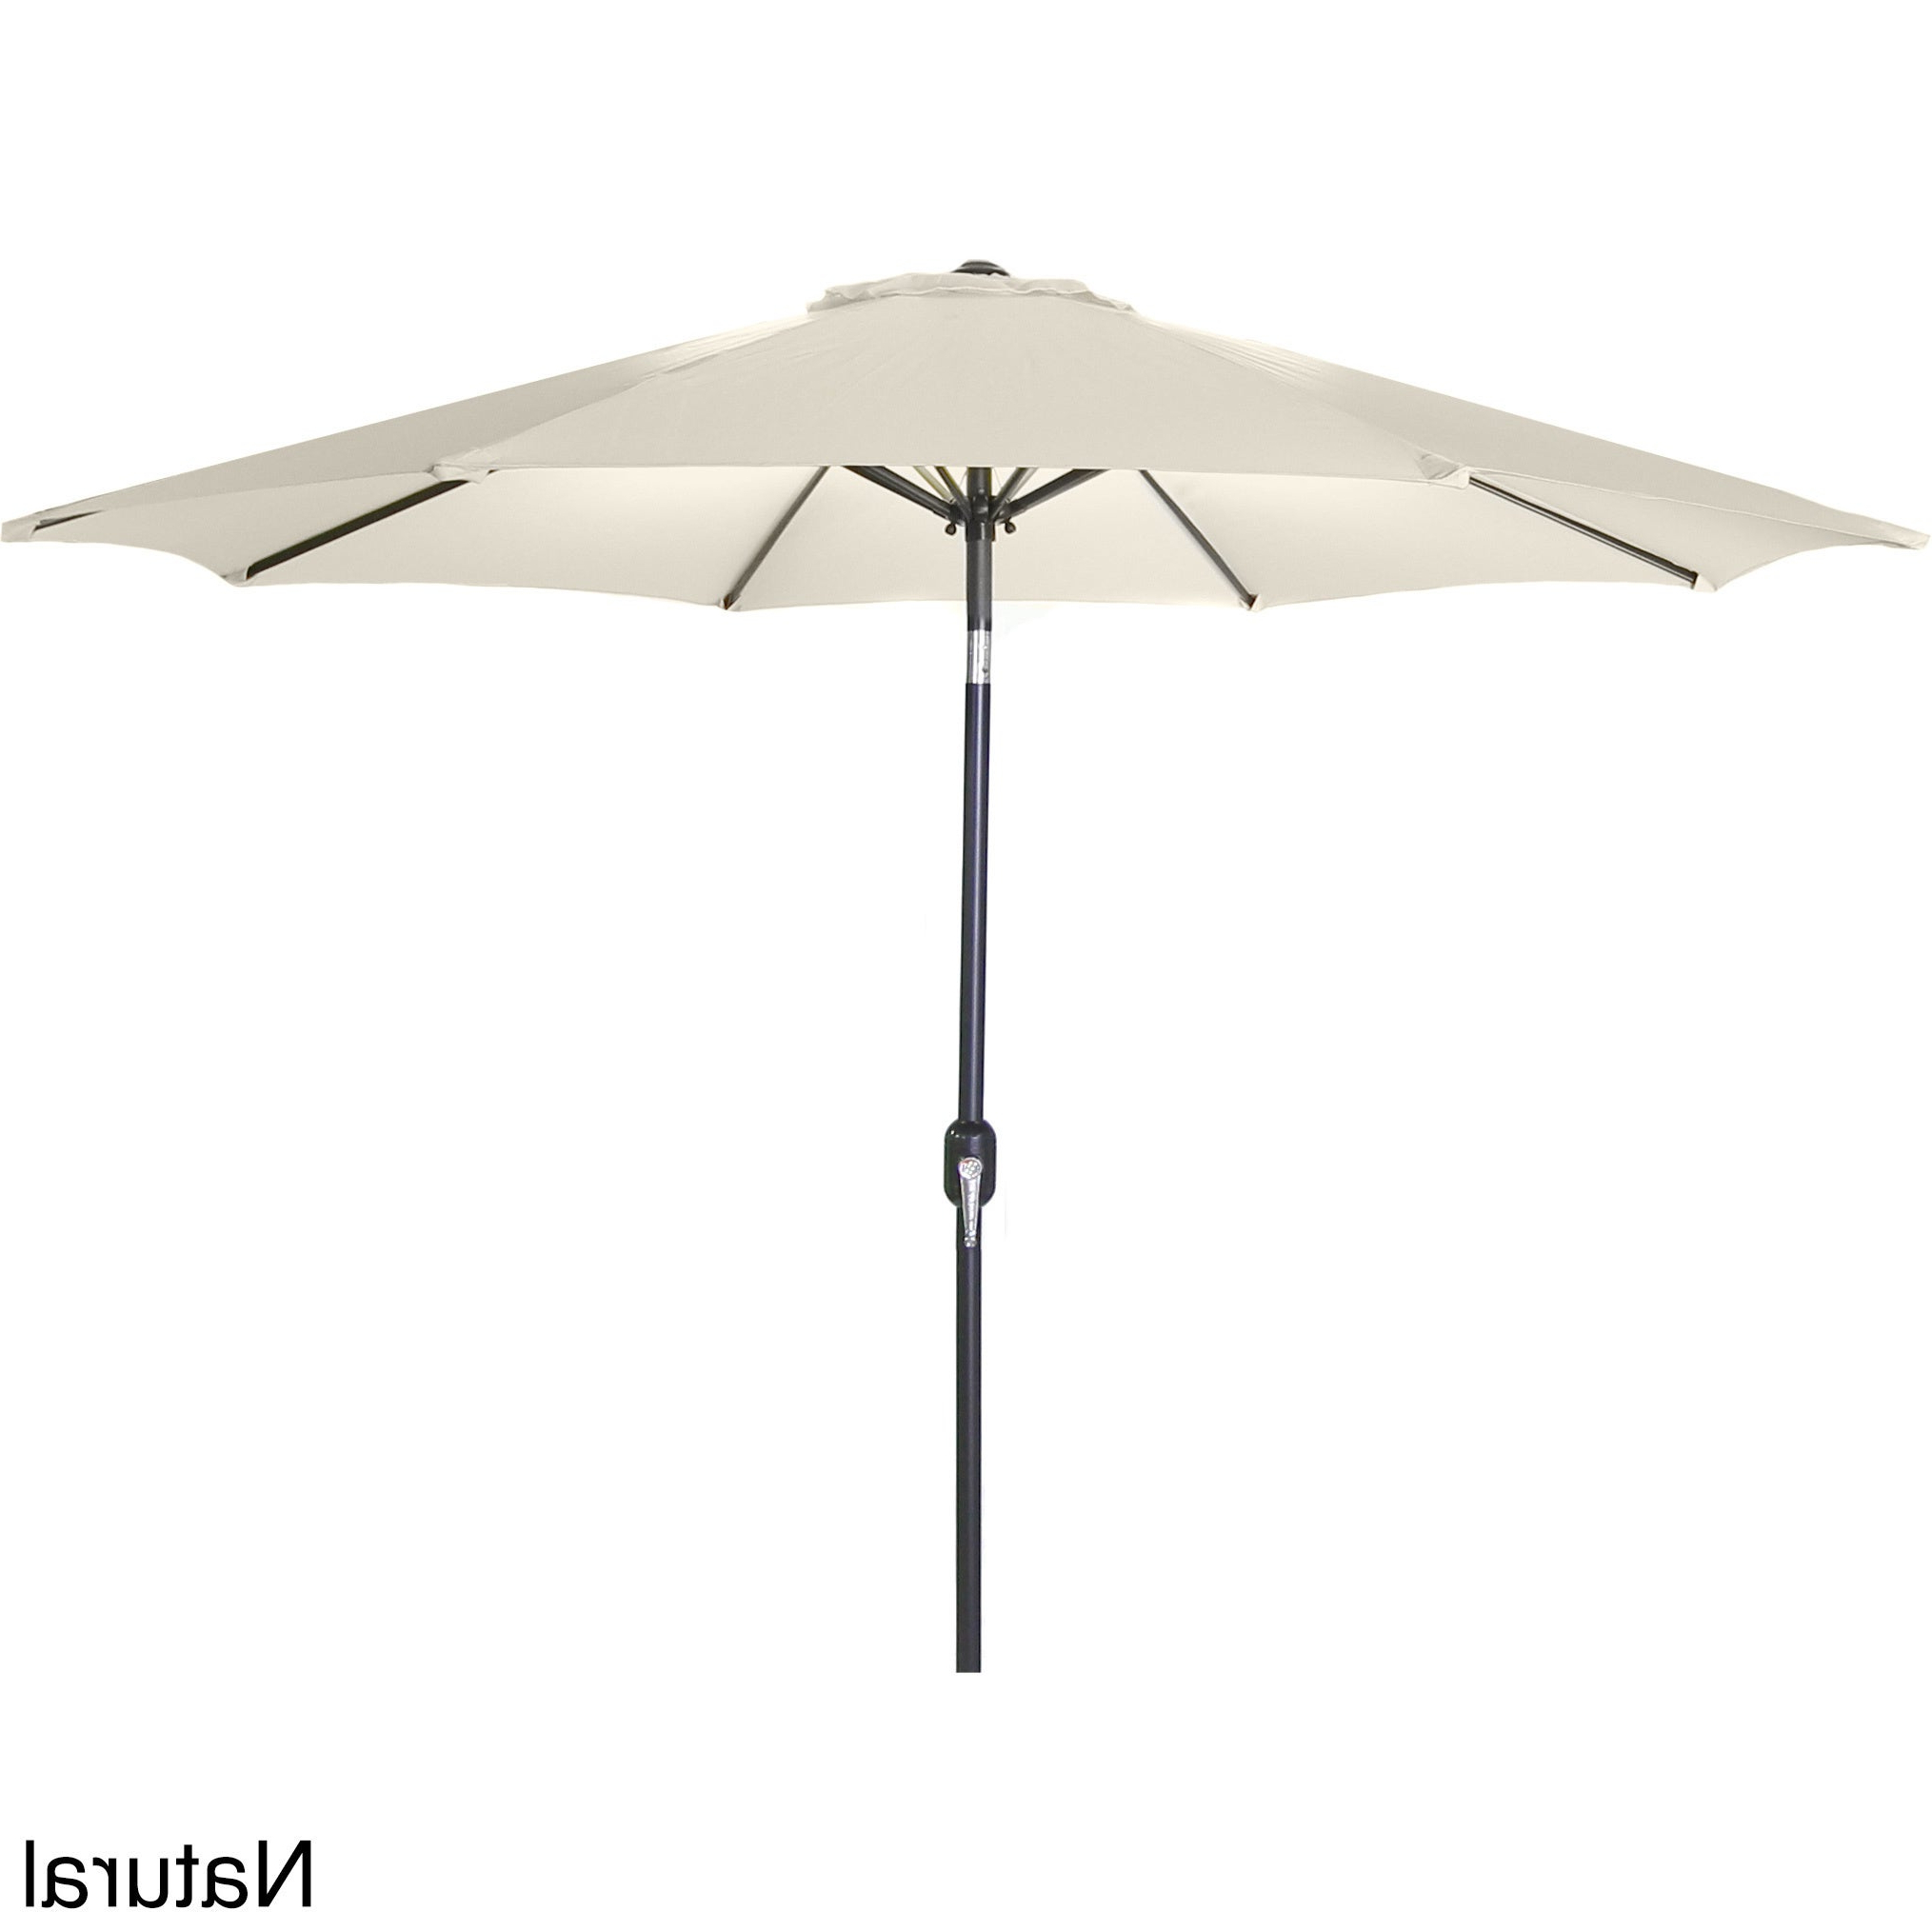 2020 Jordan Manufacturing 9 Foot Steel Market Umbrella Intended For New Haven Market Umbrellas (View 1 of 20)